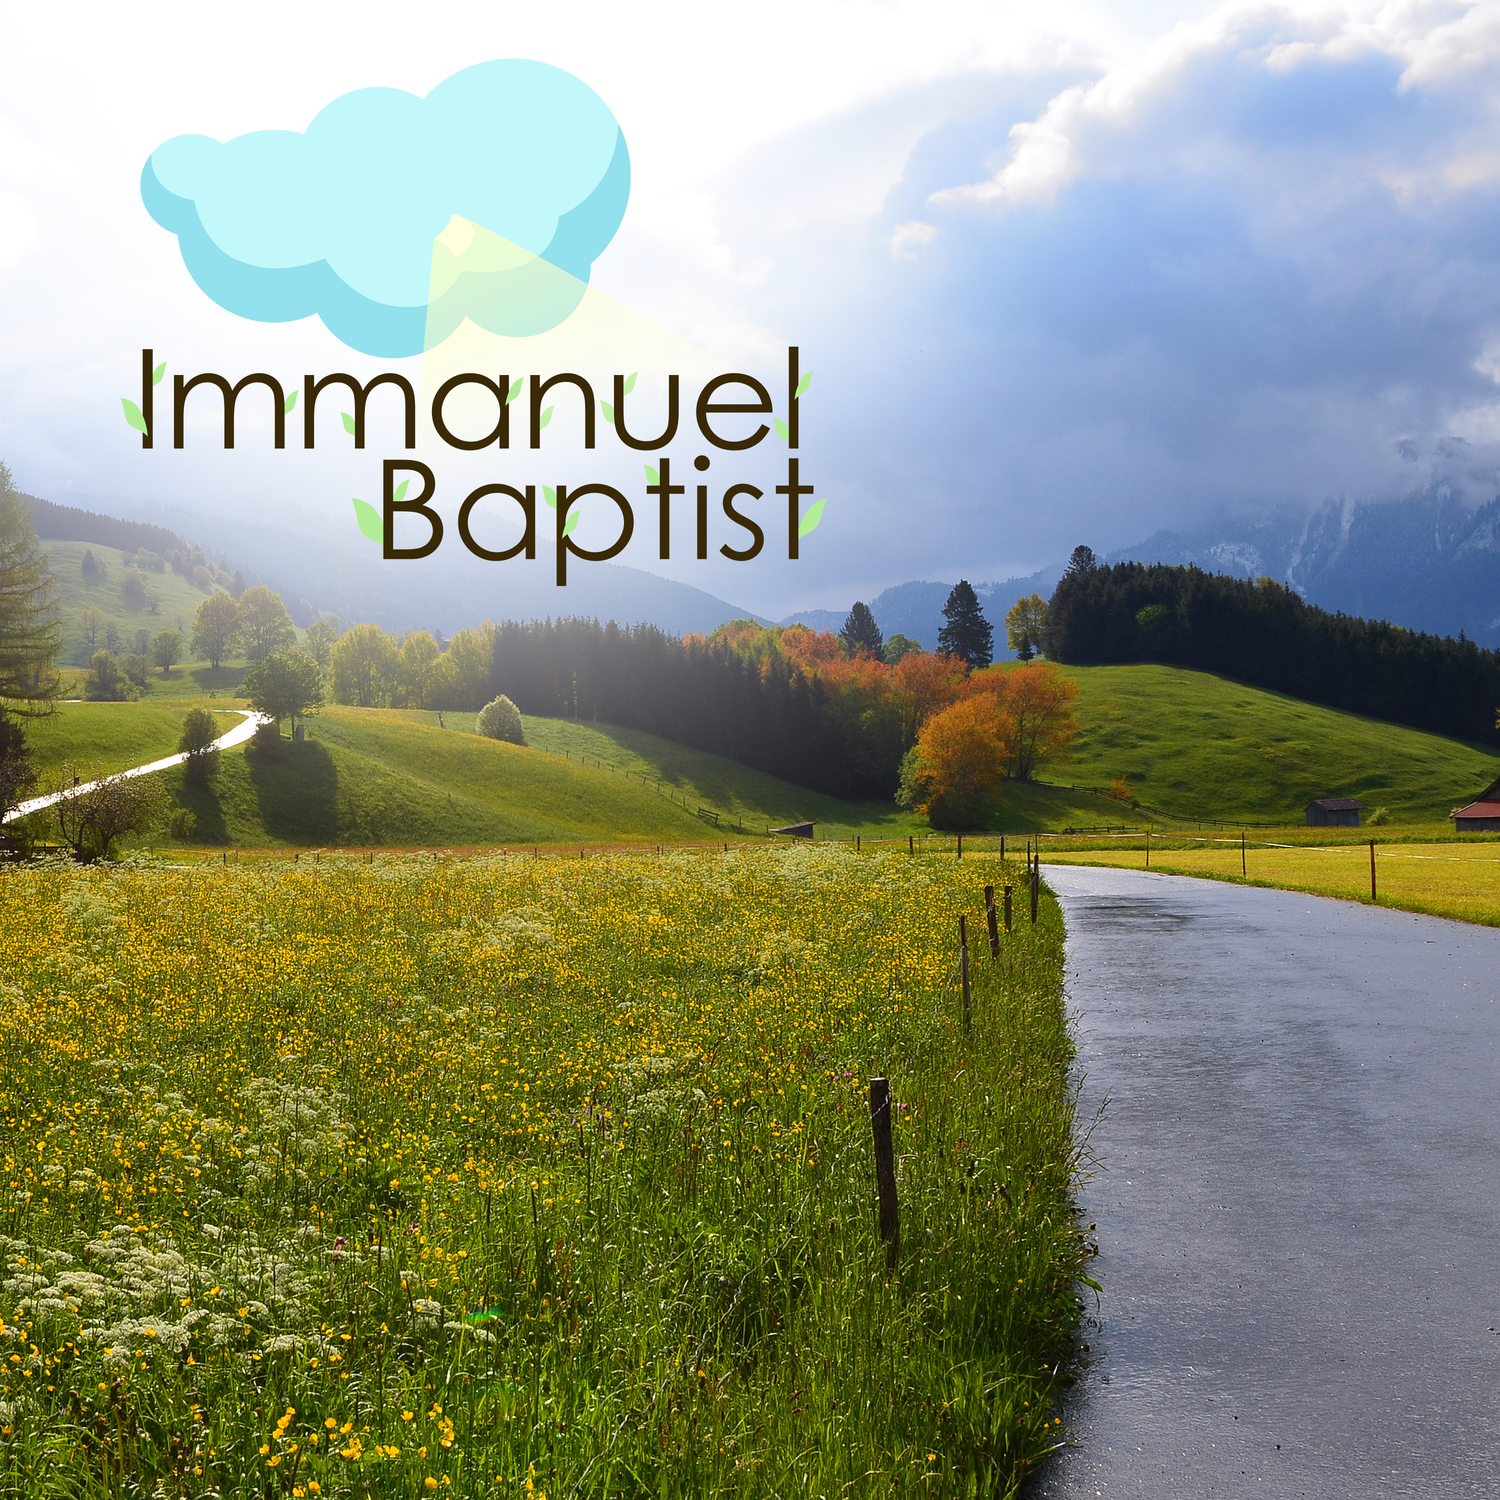 Sermons from Immanuel Baptist Church - Immanuel Baptist